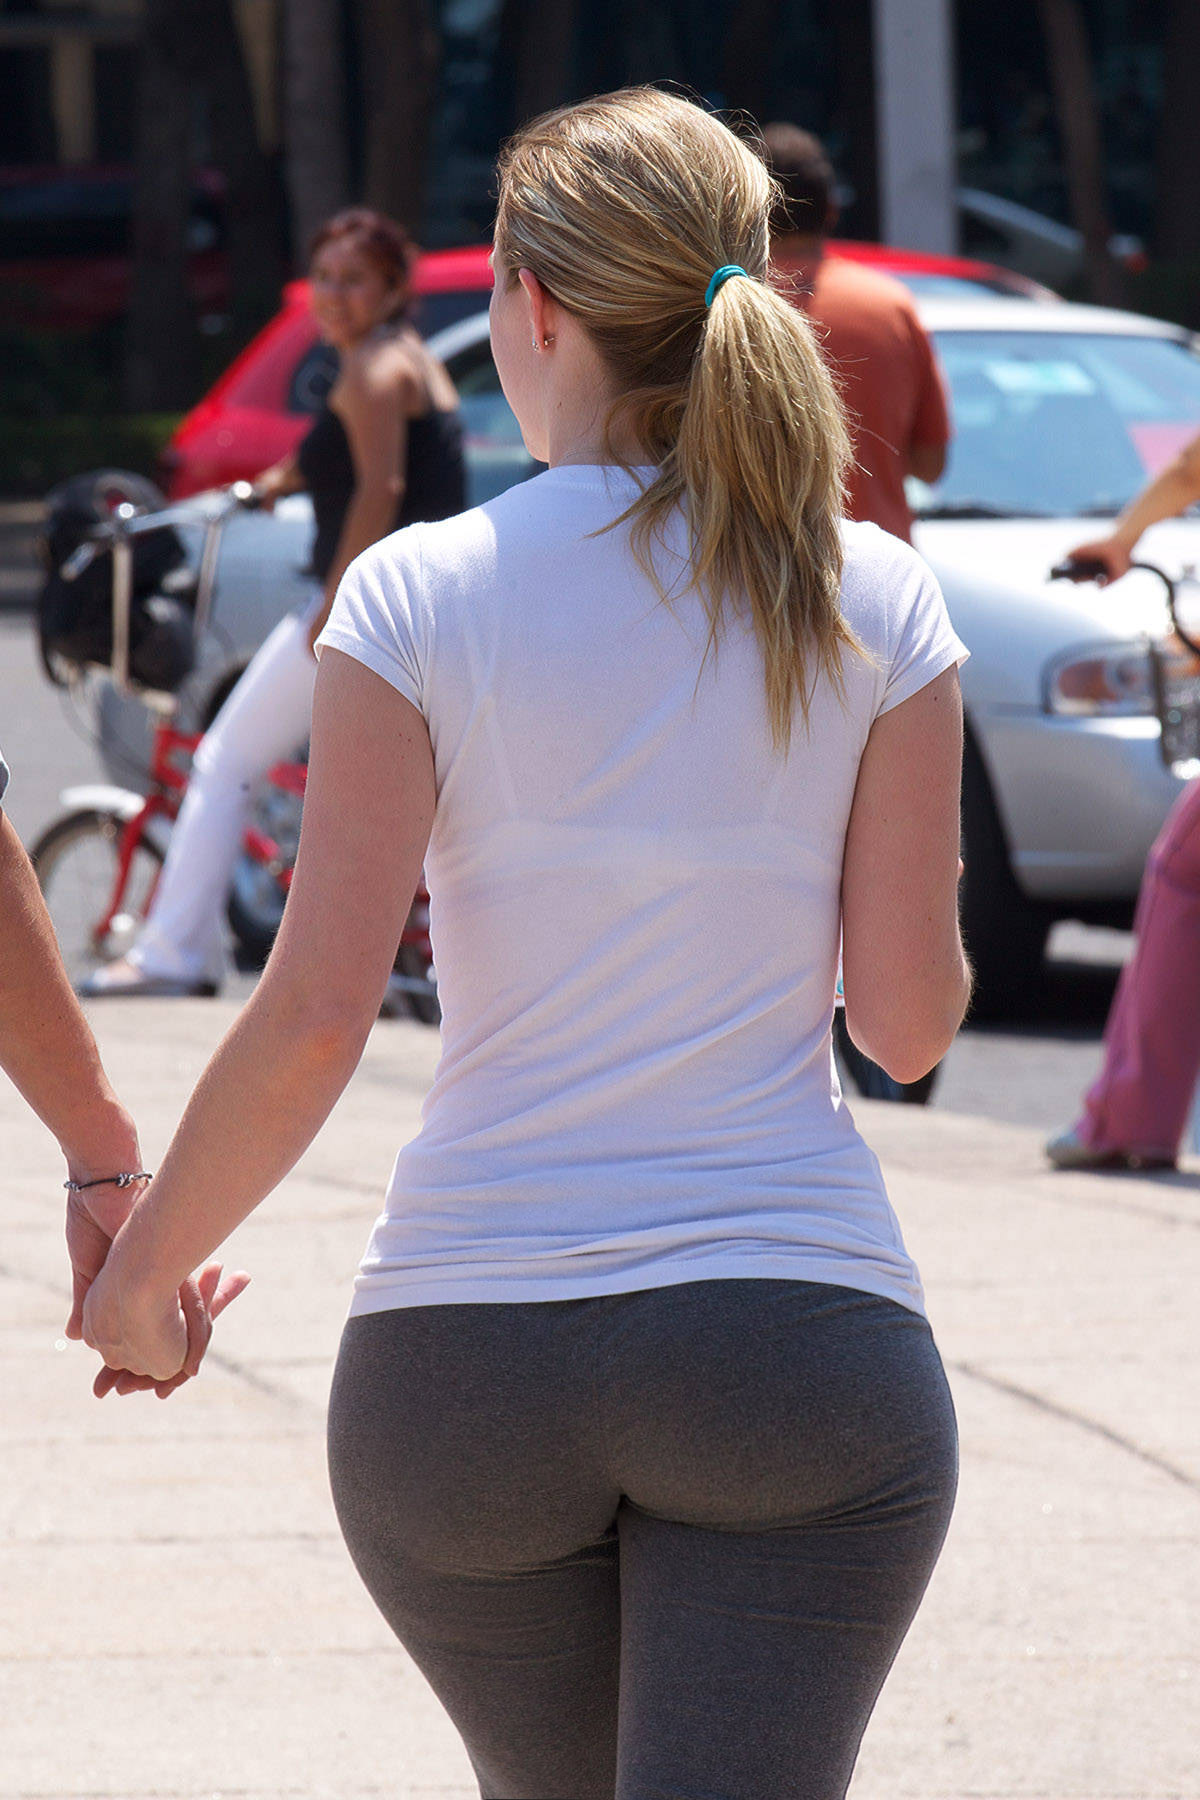 Phat ass yoga pants